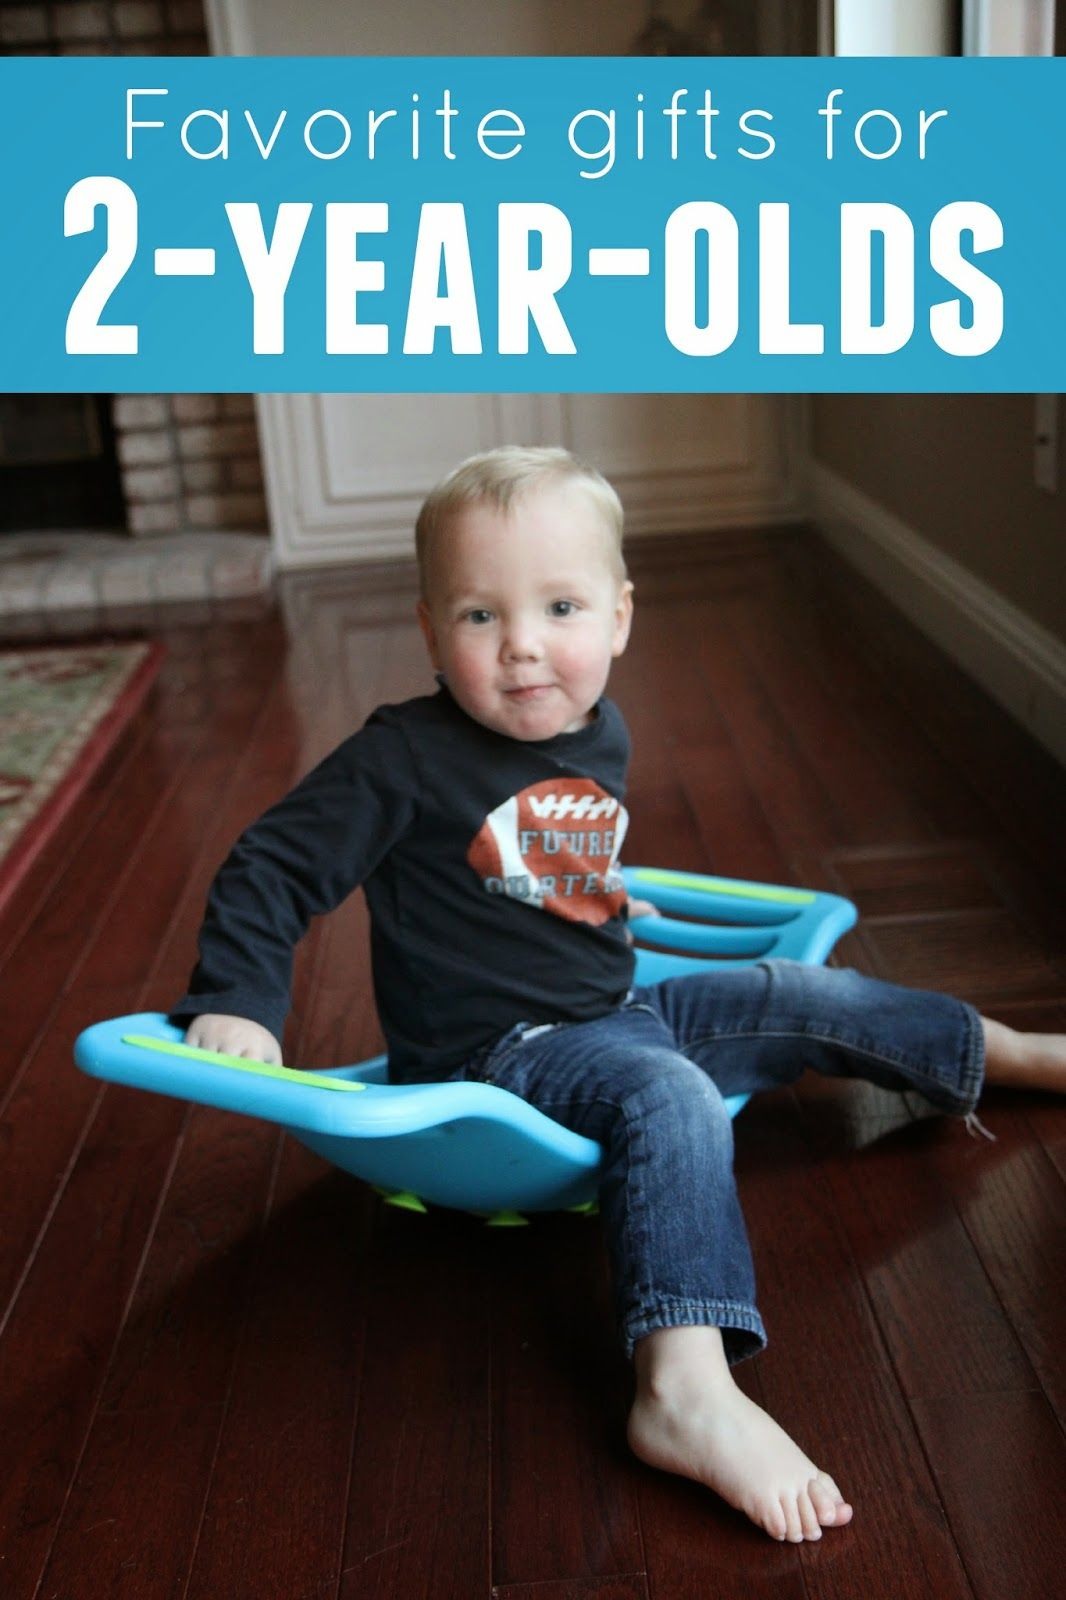 Favorite Gifts For 2 Year Olds Caston Toddler Fun 2